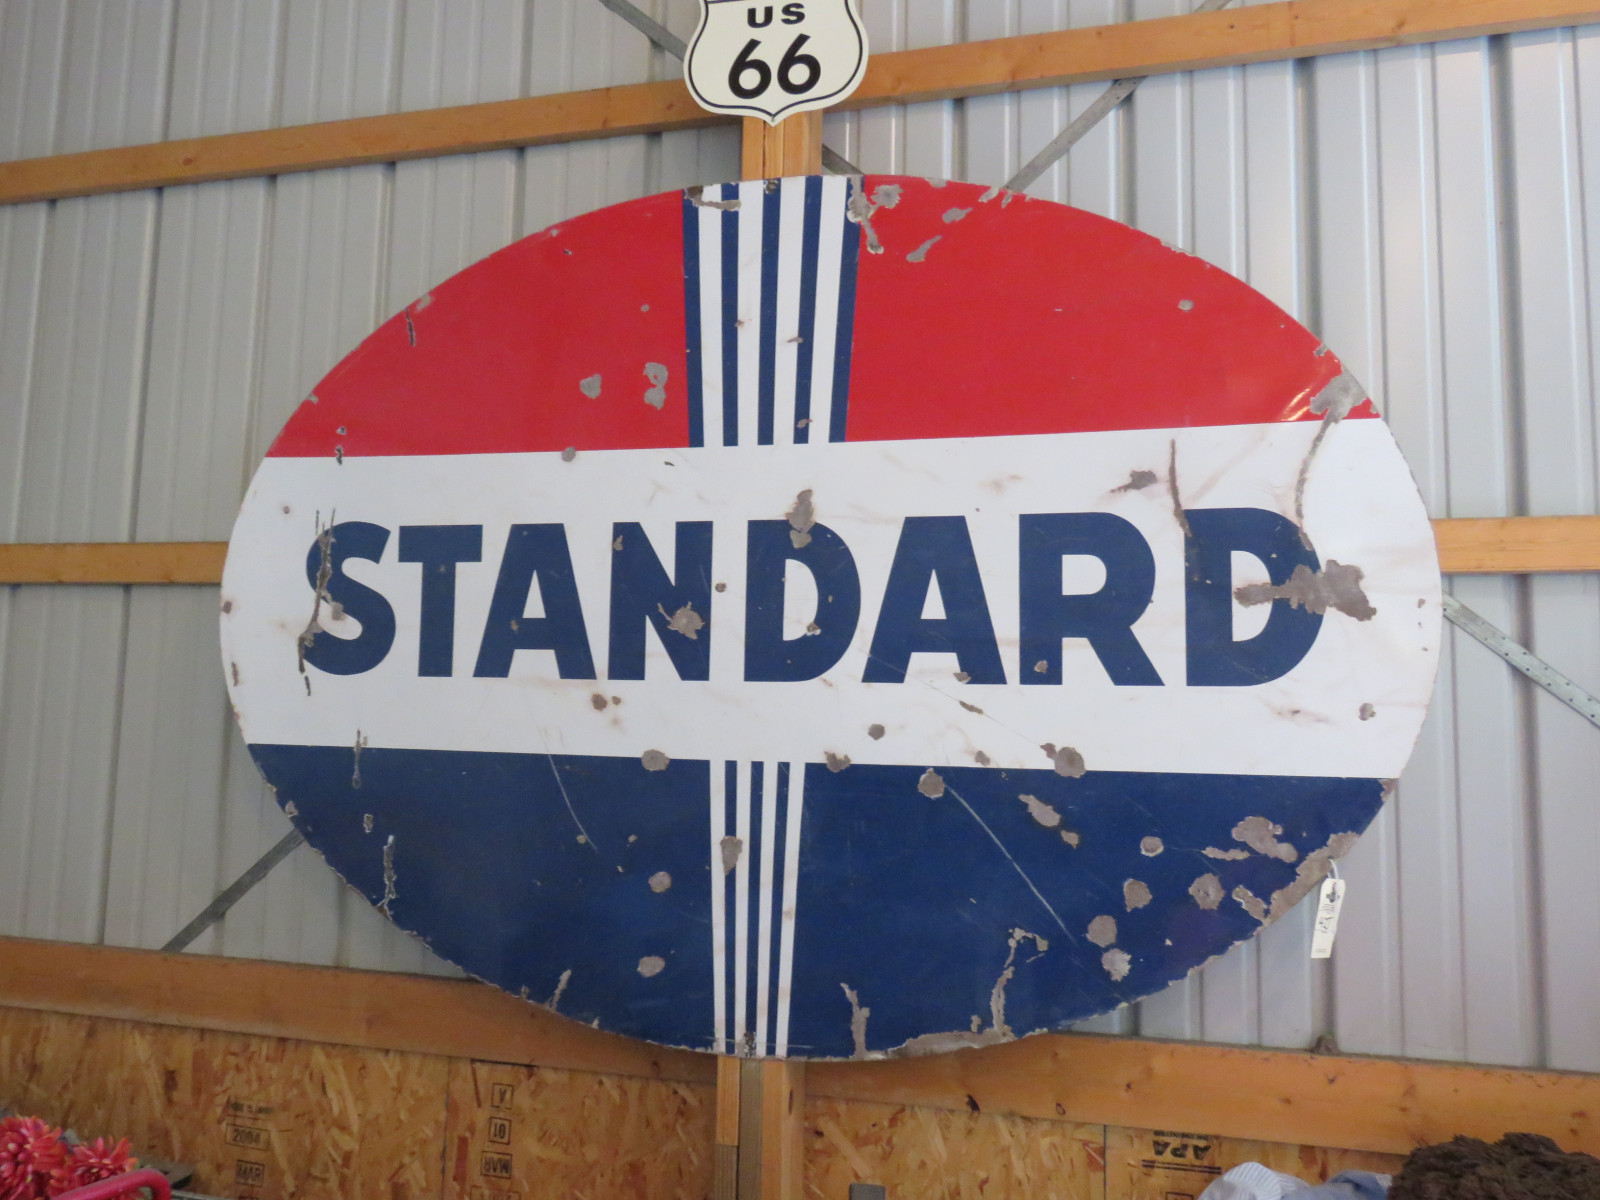 Standard Oil Porcelain Sign - Image 1